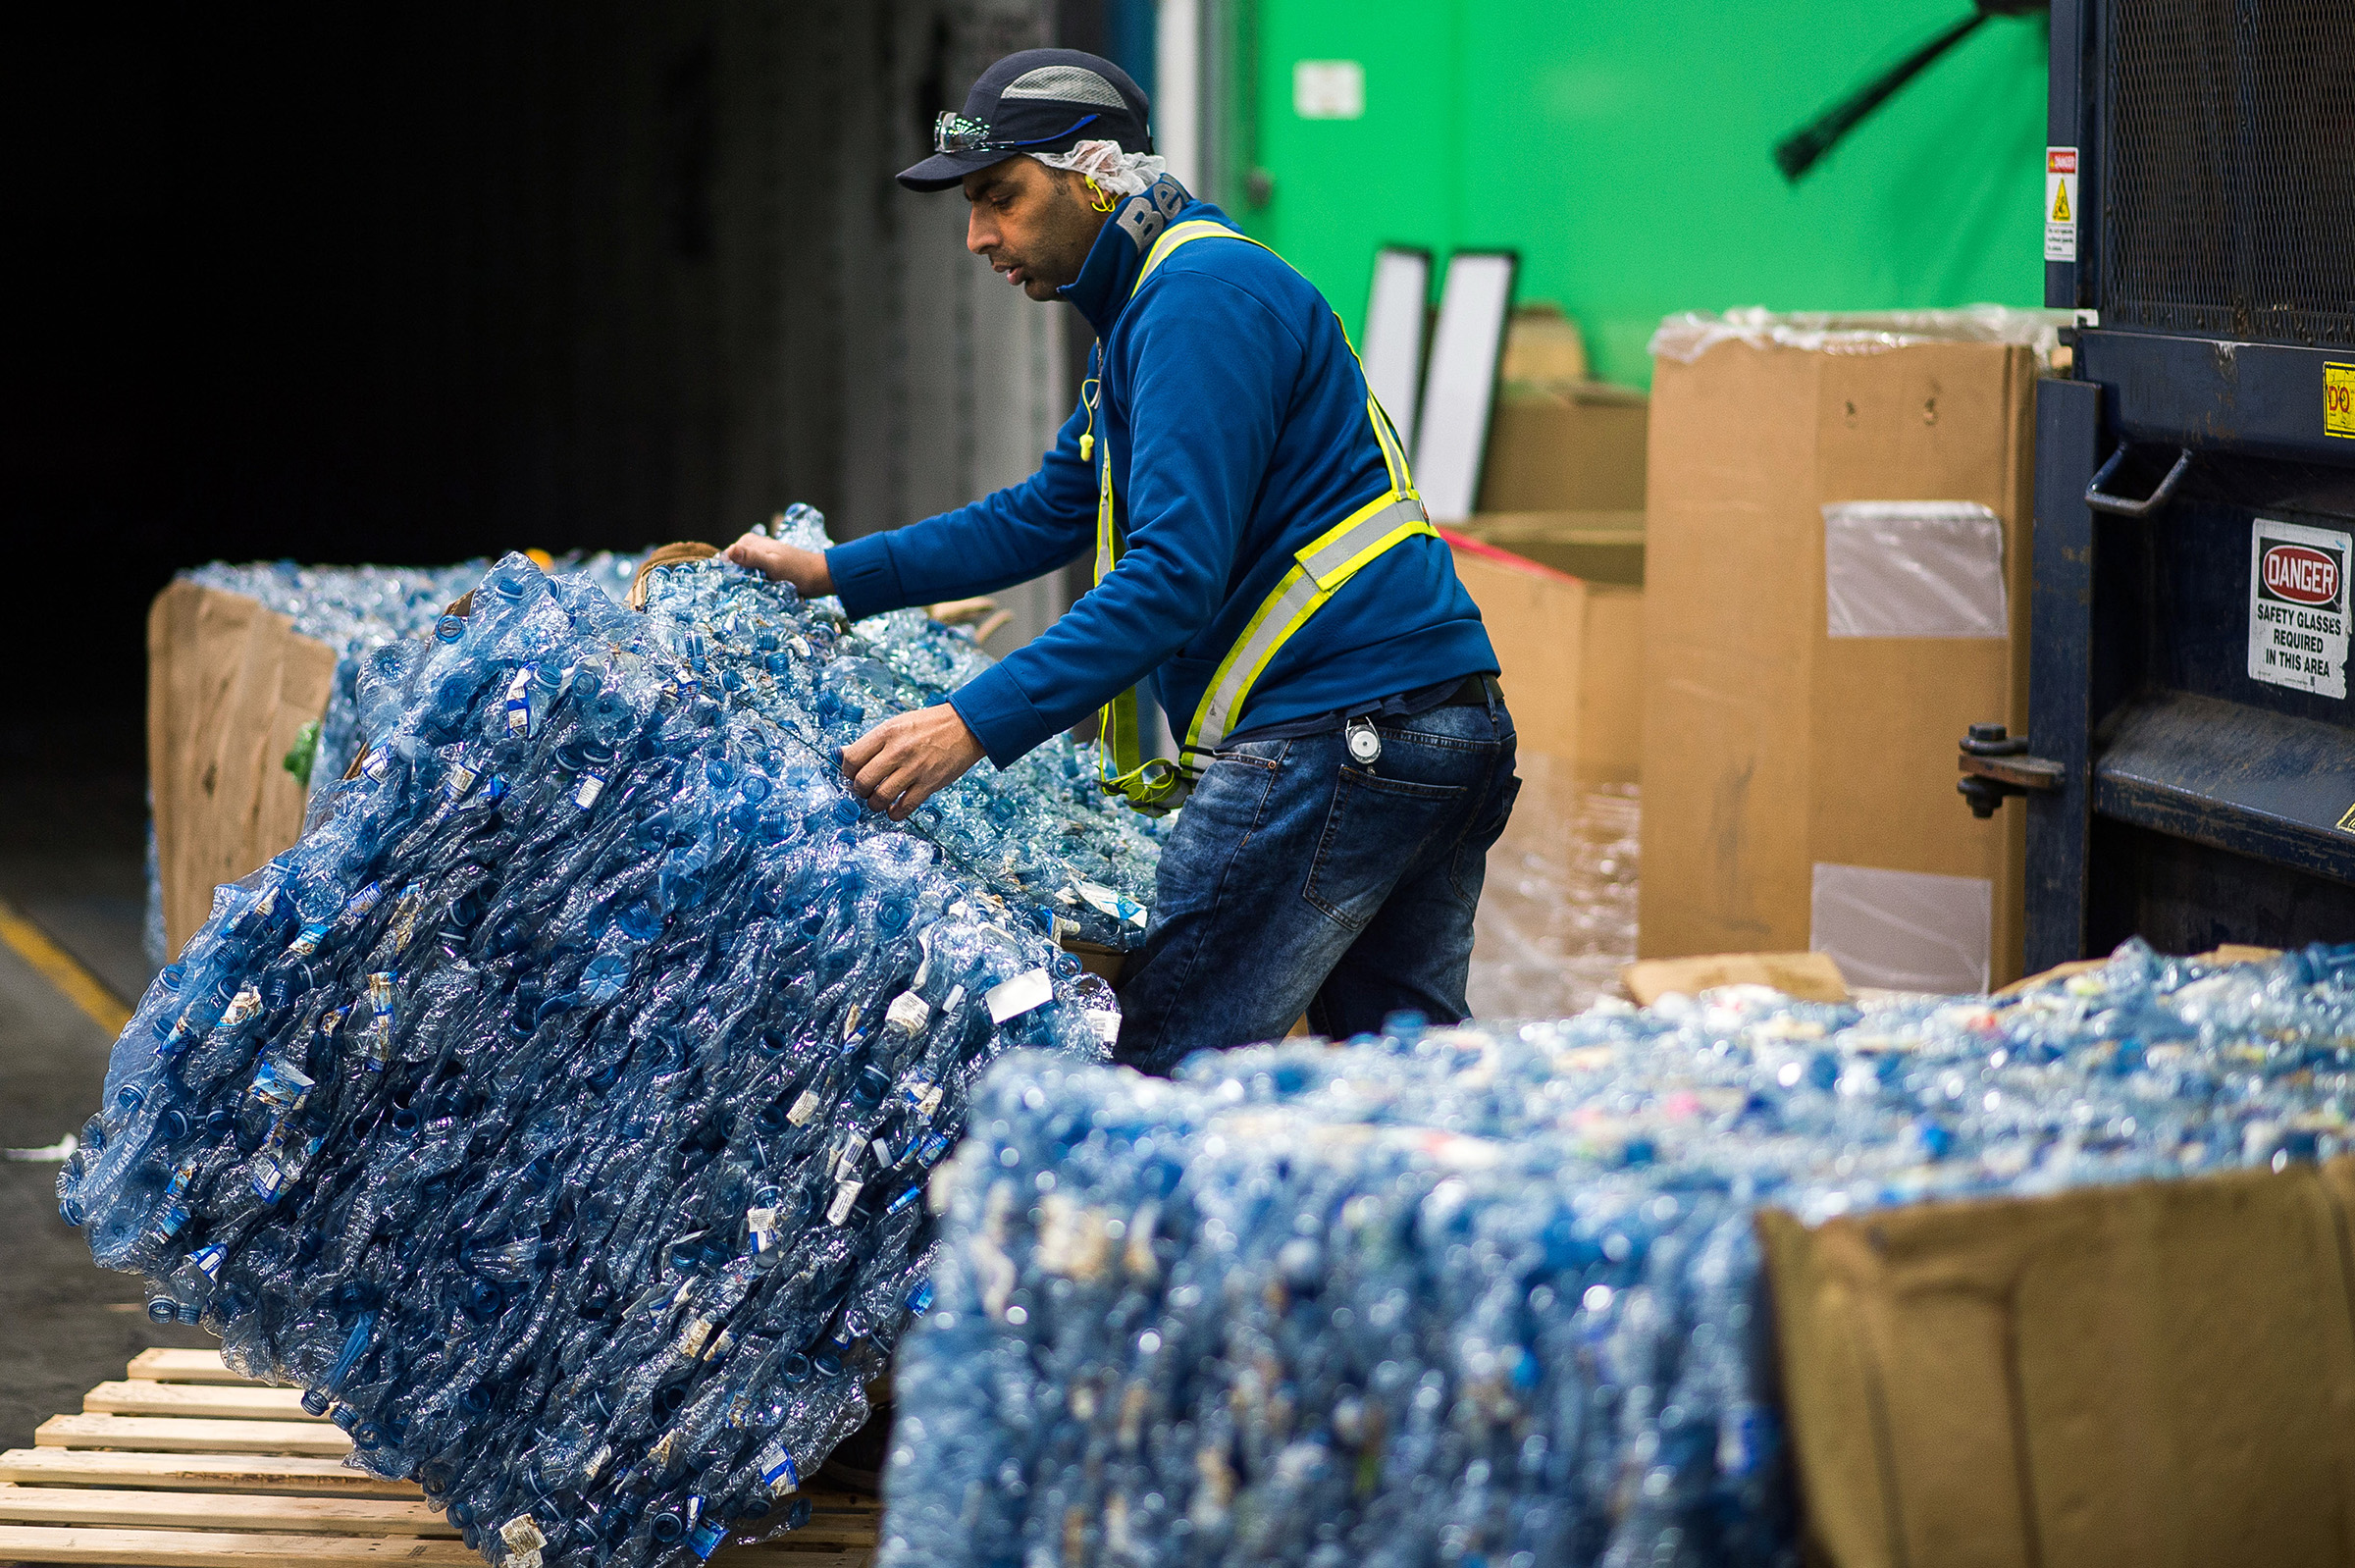 A worker moves a bundle of crushed plastic water bottles to be shipped to the Ice River Springs Water Co. Inc. recycling facility in Chilliwack, Canada, on Nov. 18, 2019.